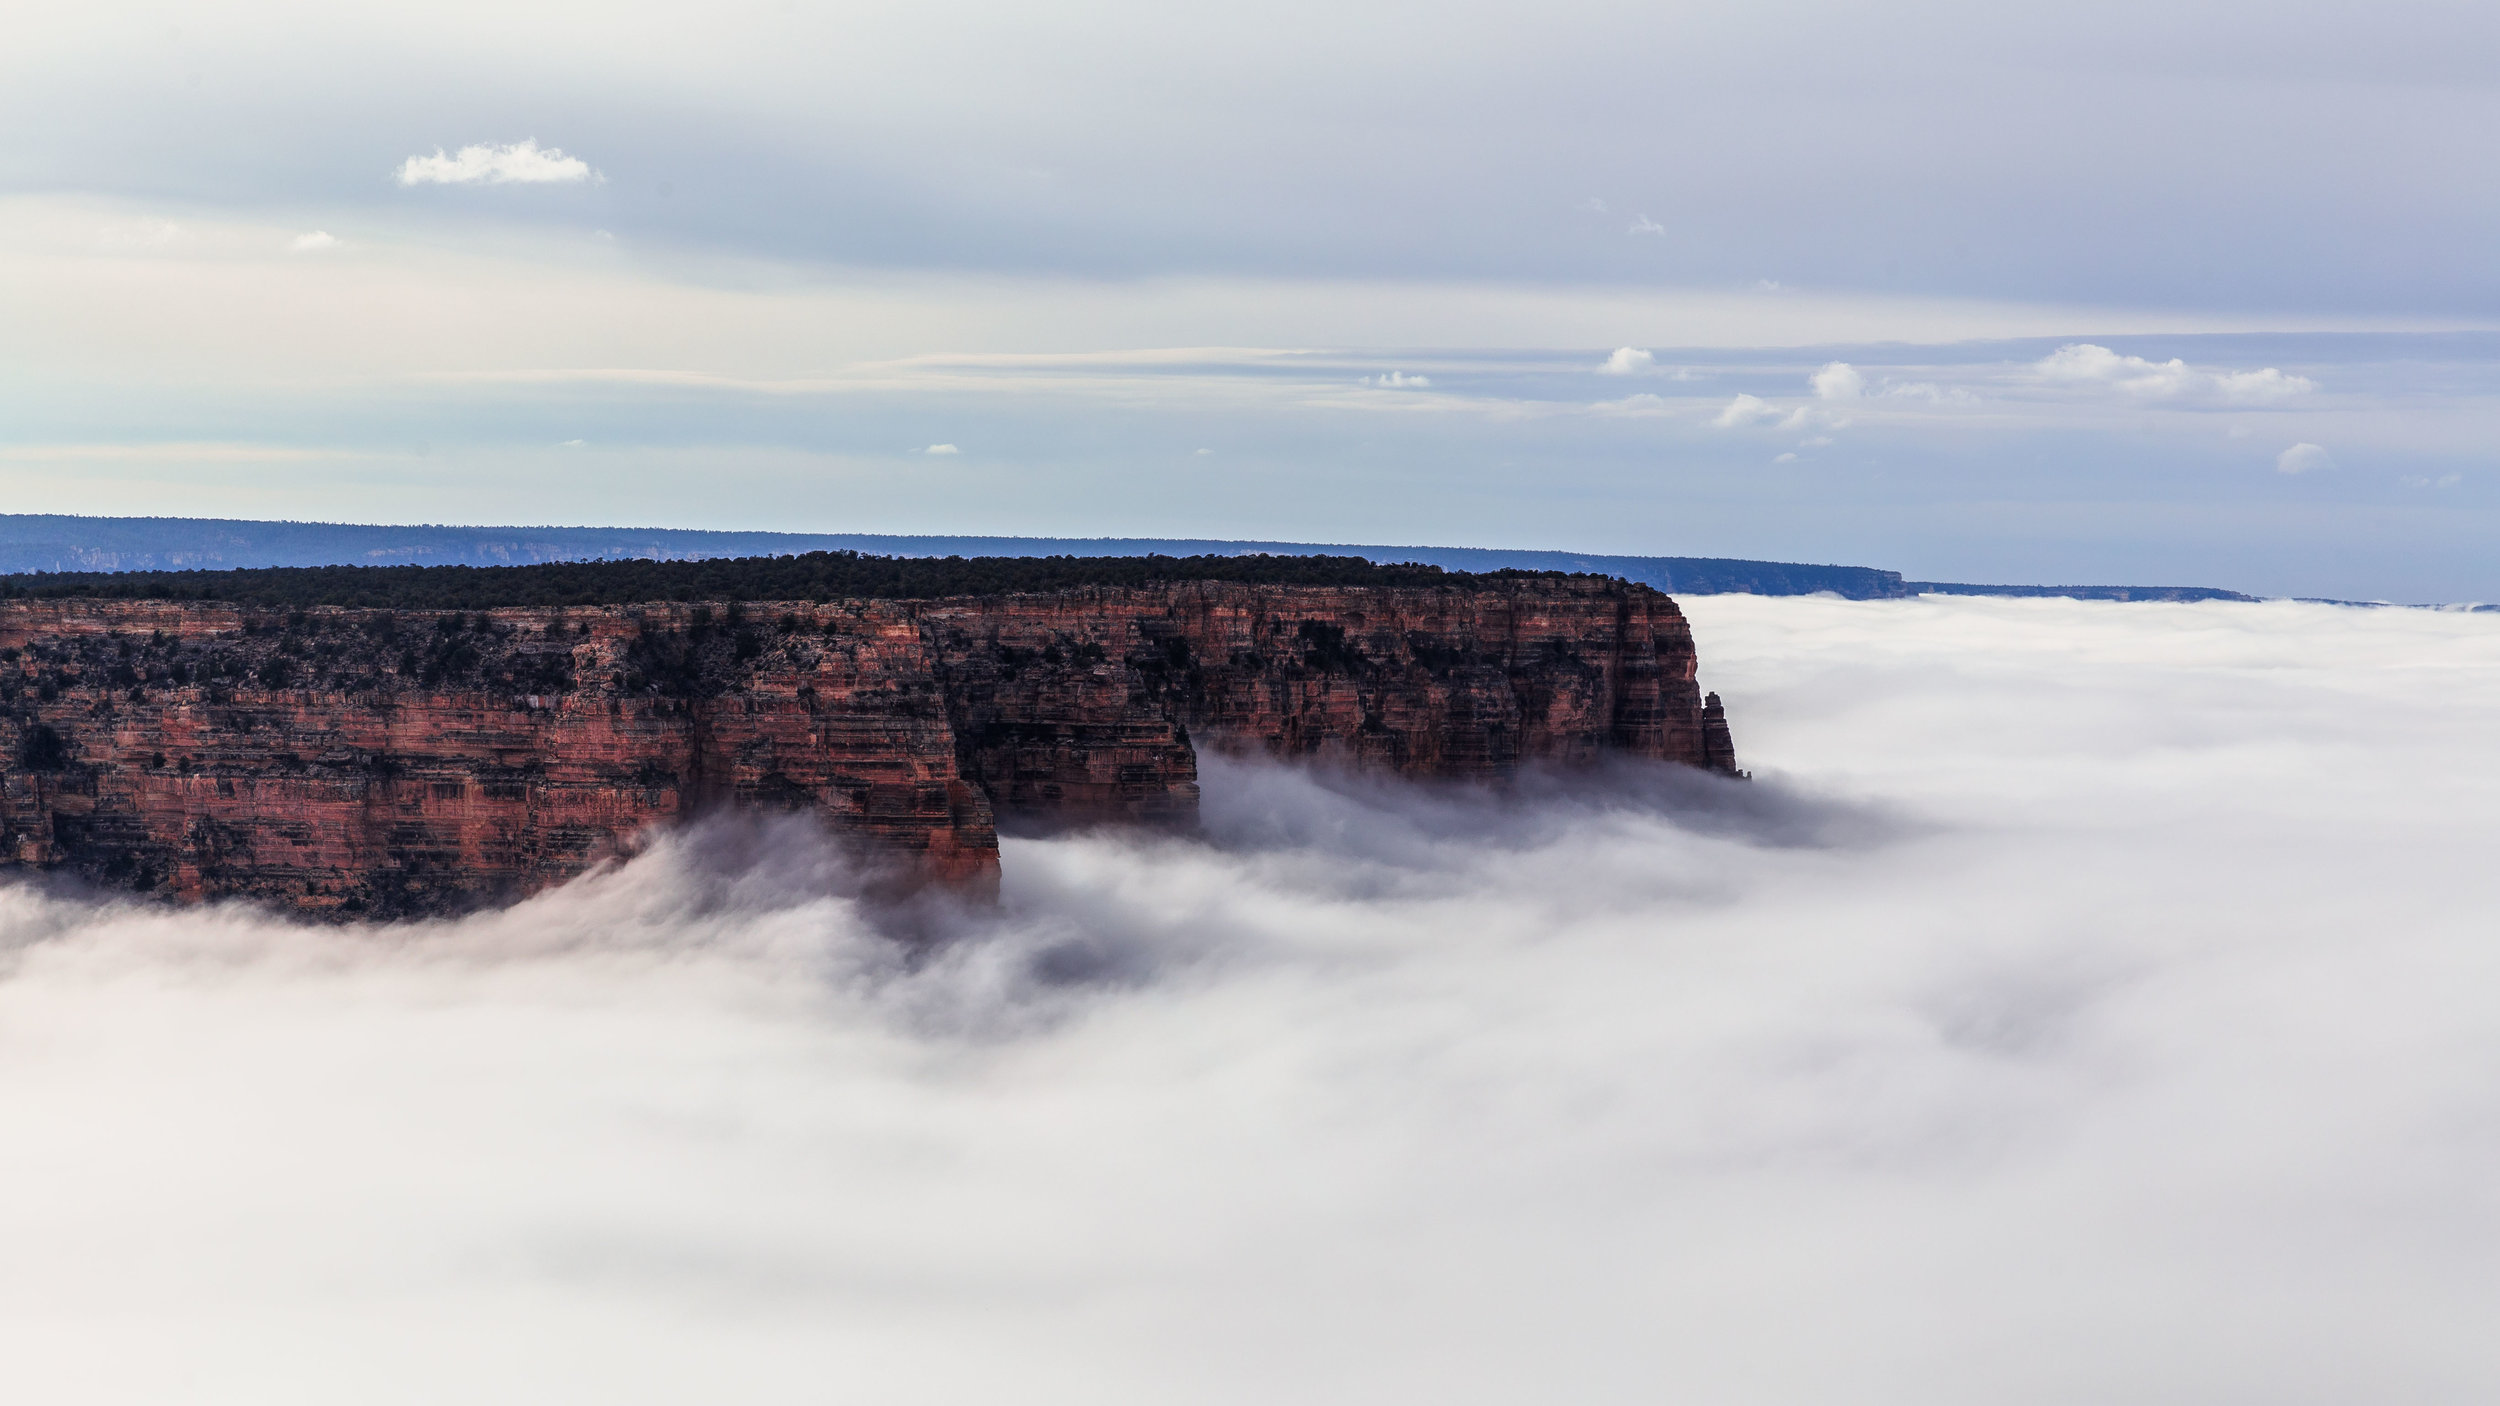 Photograph captures rare phenomenon of clouds rolling inside Grand Canyon